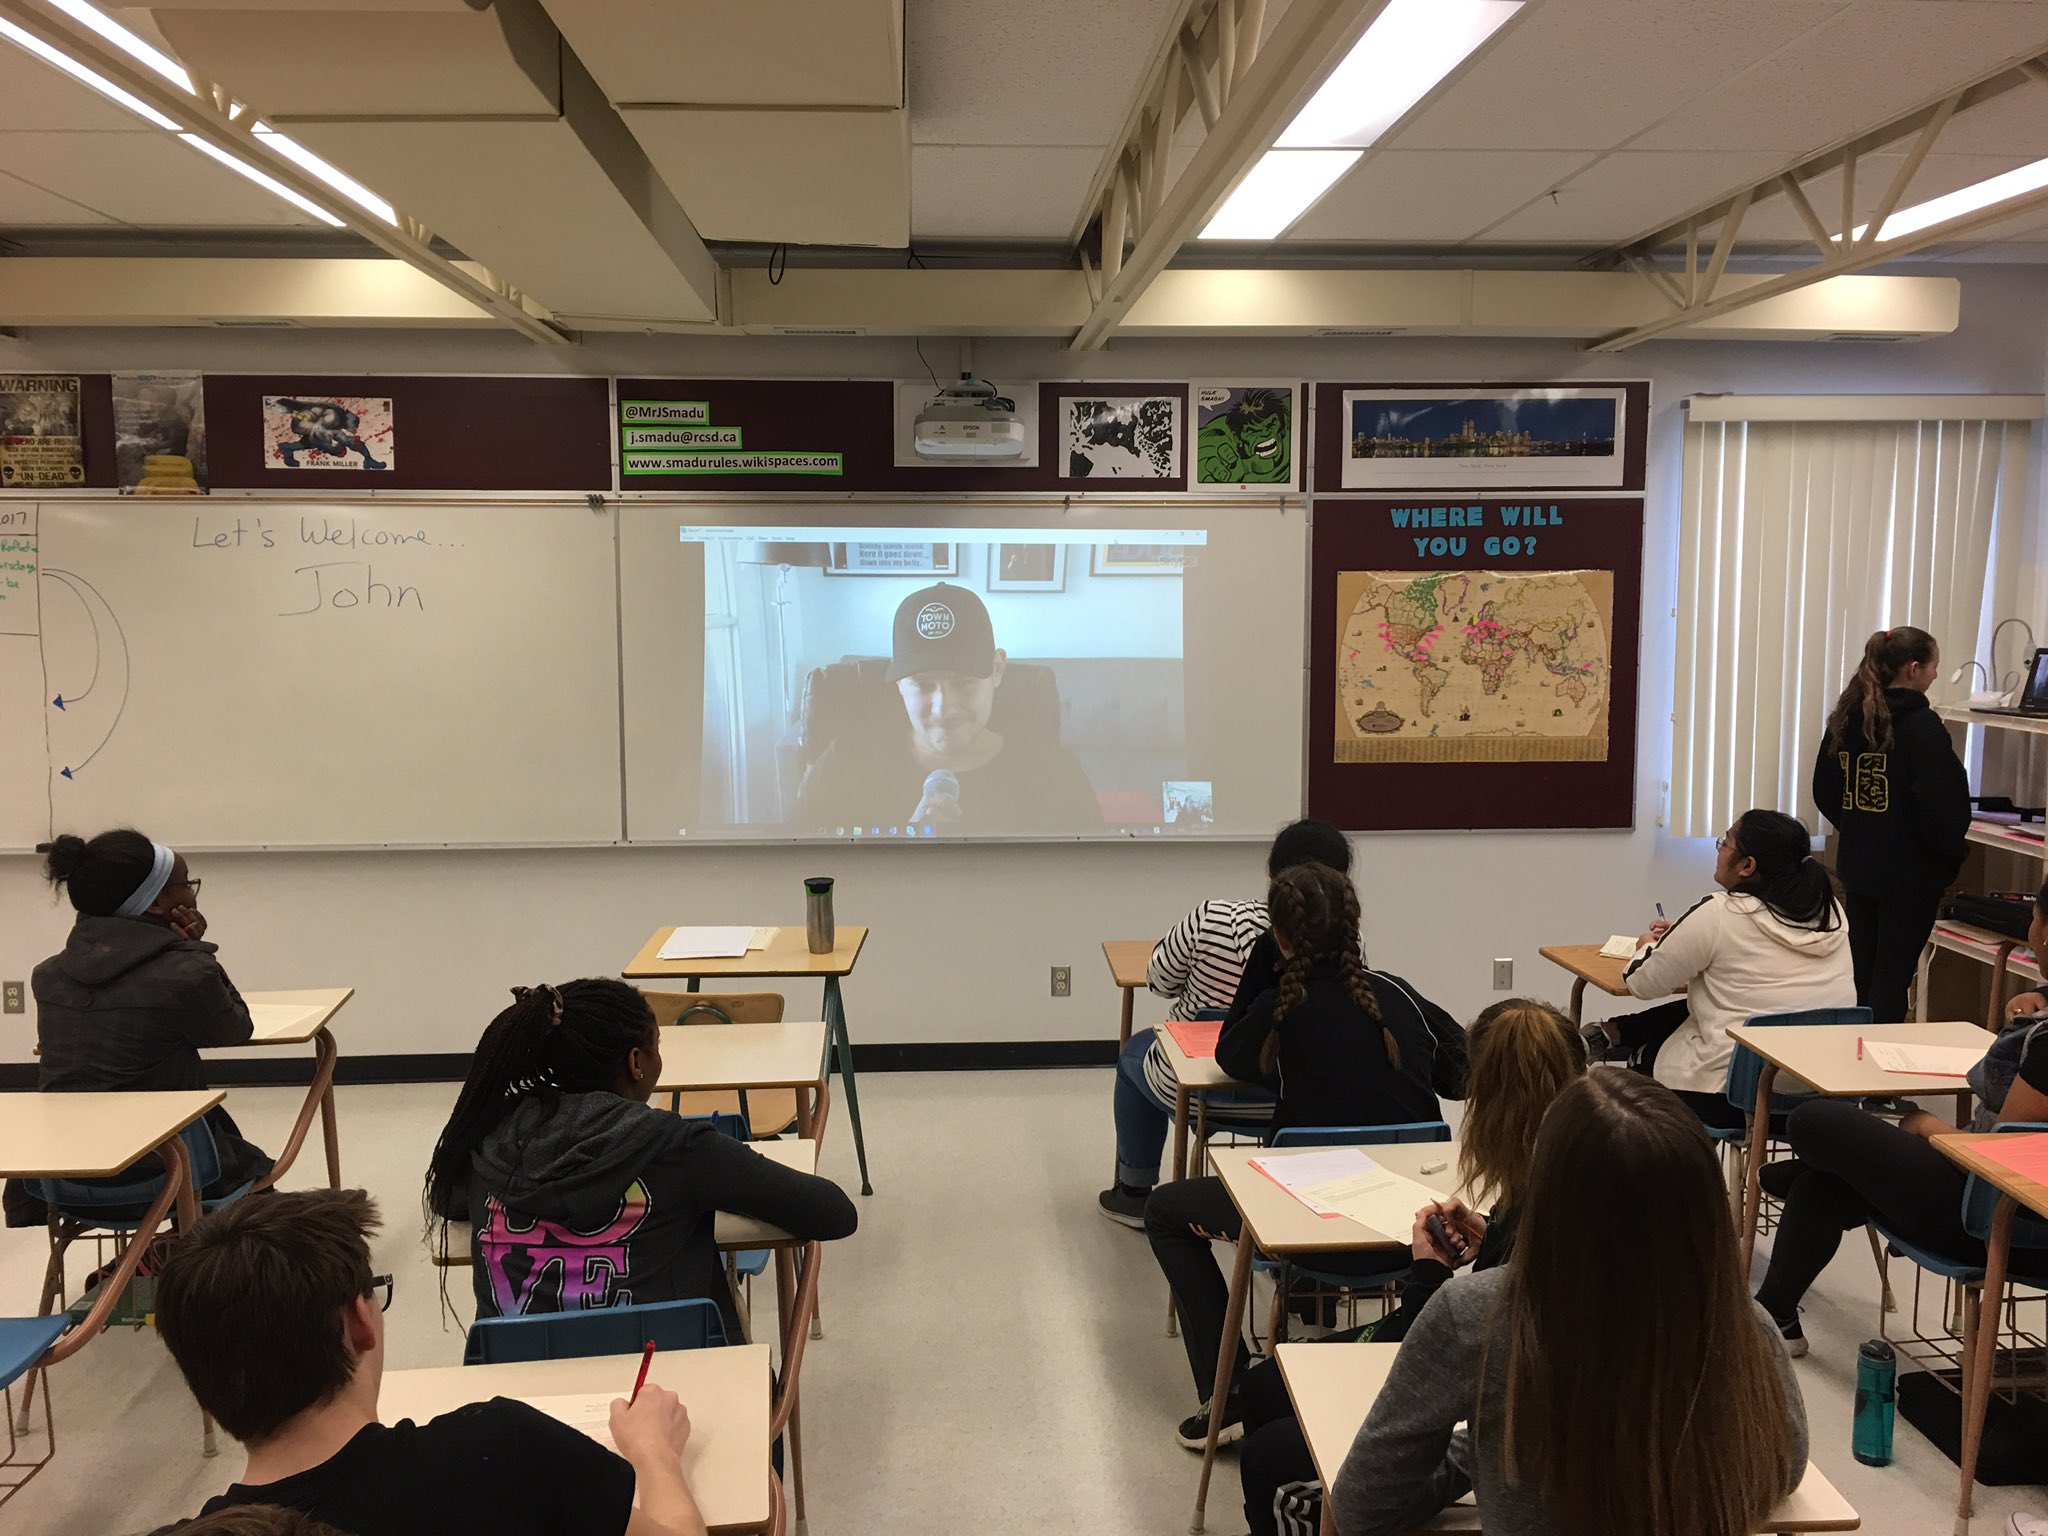 P2 ELAA9 had 2nd #SmaduSkypeSessions © today with #YYZ sushi chef John fr @sushicateringTO. Many thanks! @oneilltitans @RCSD_No81 #rcsdtech https://t.co/0ZqZM4KviH